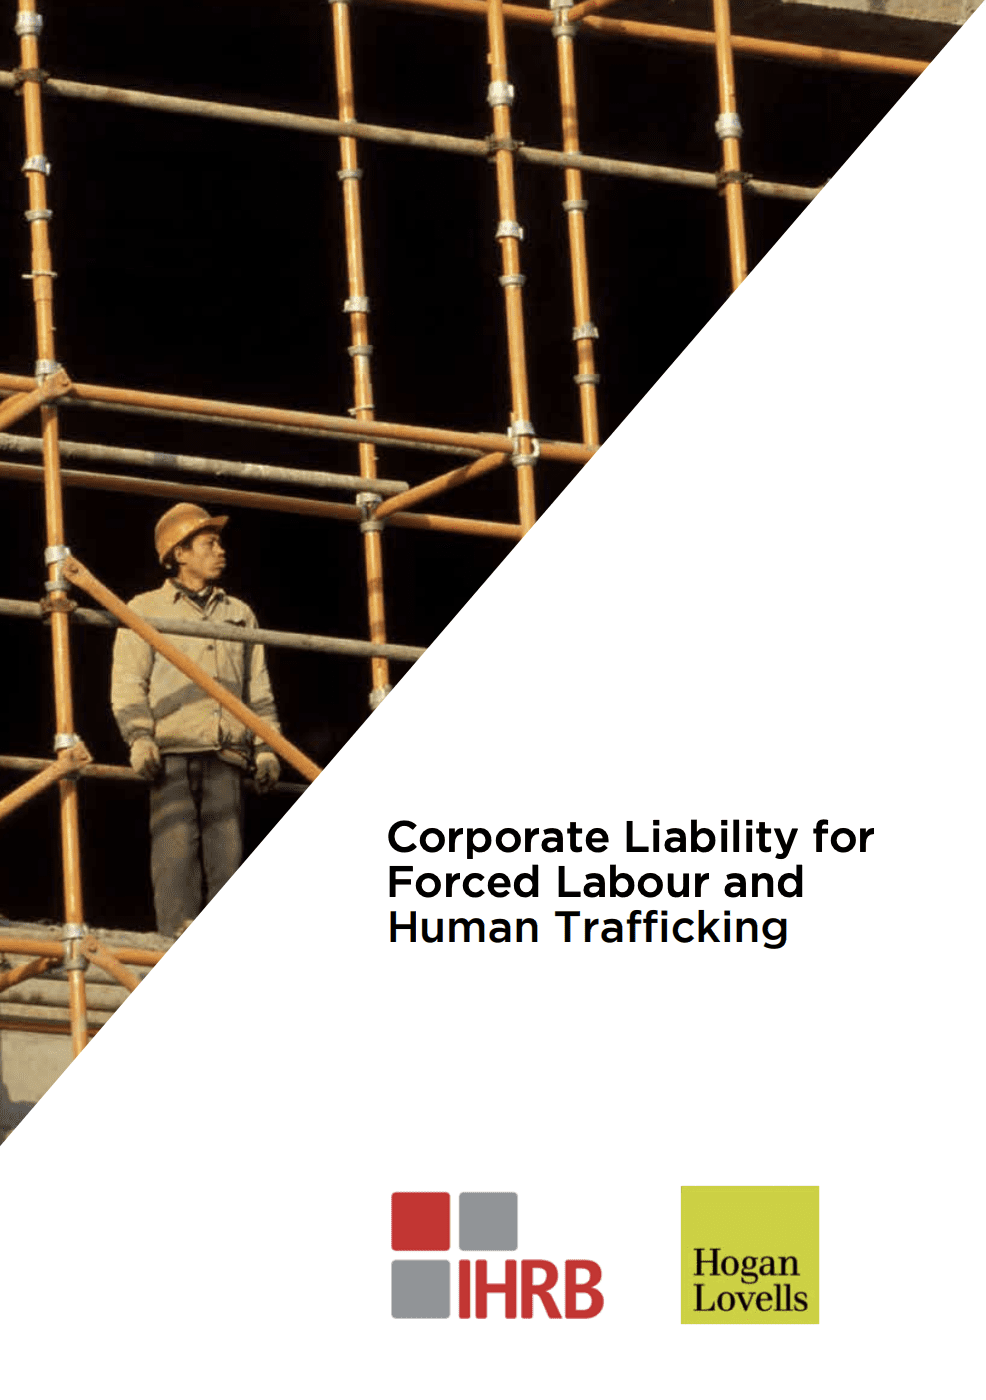 Corporate Liability for Forced Labour and Human Trafficking